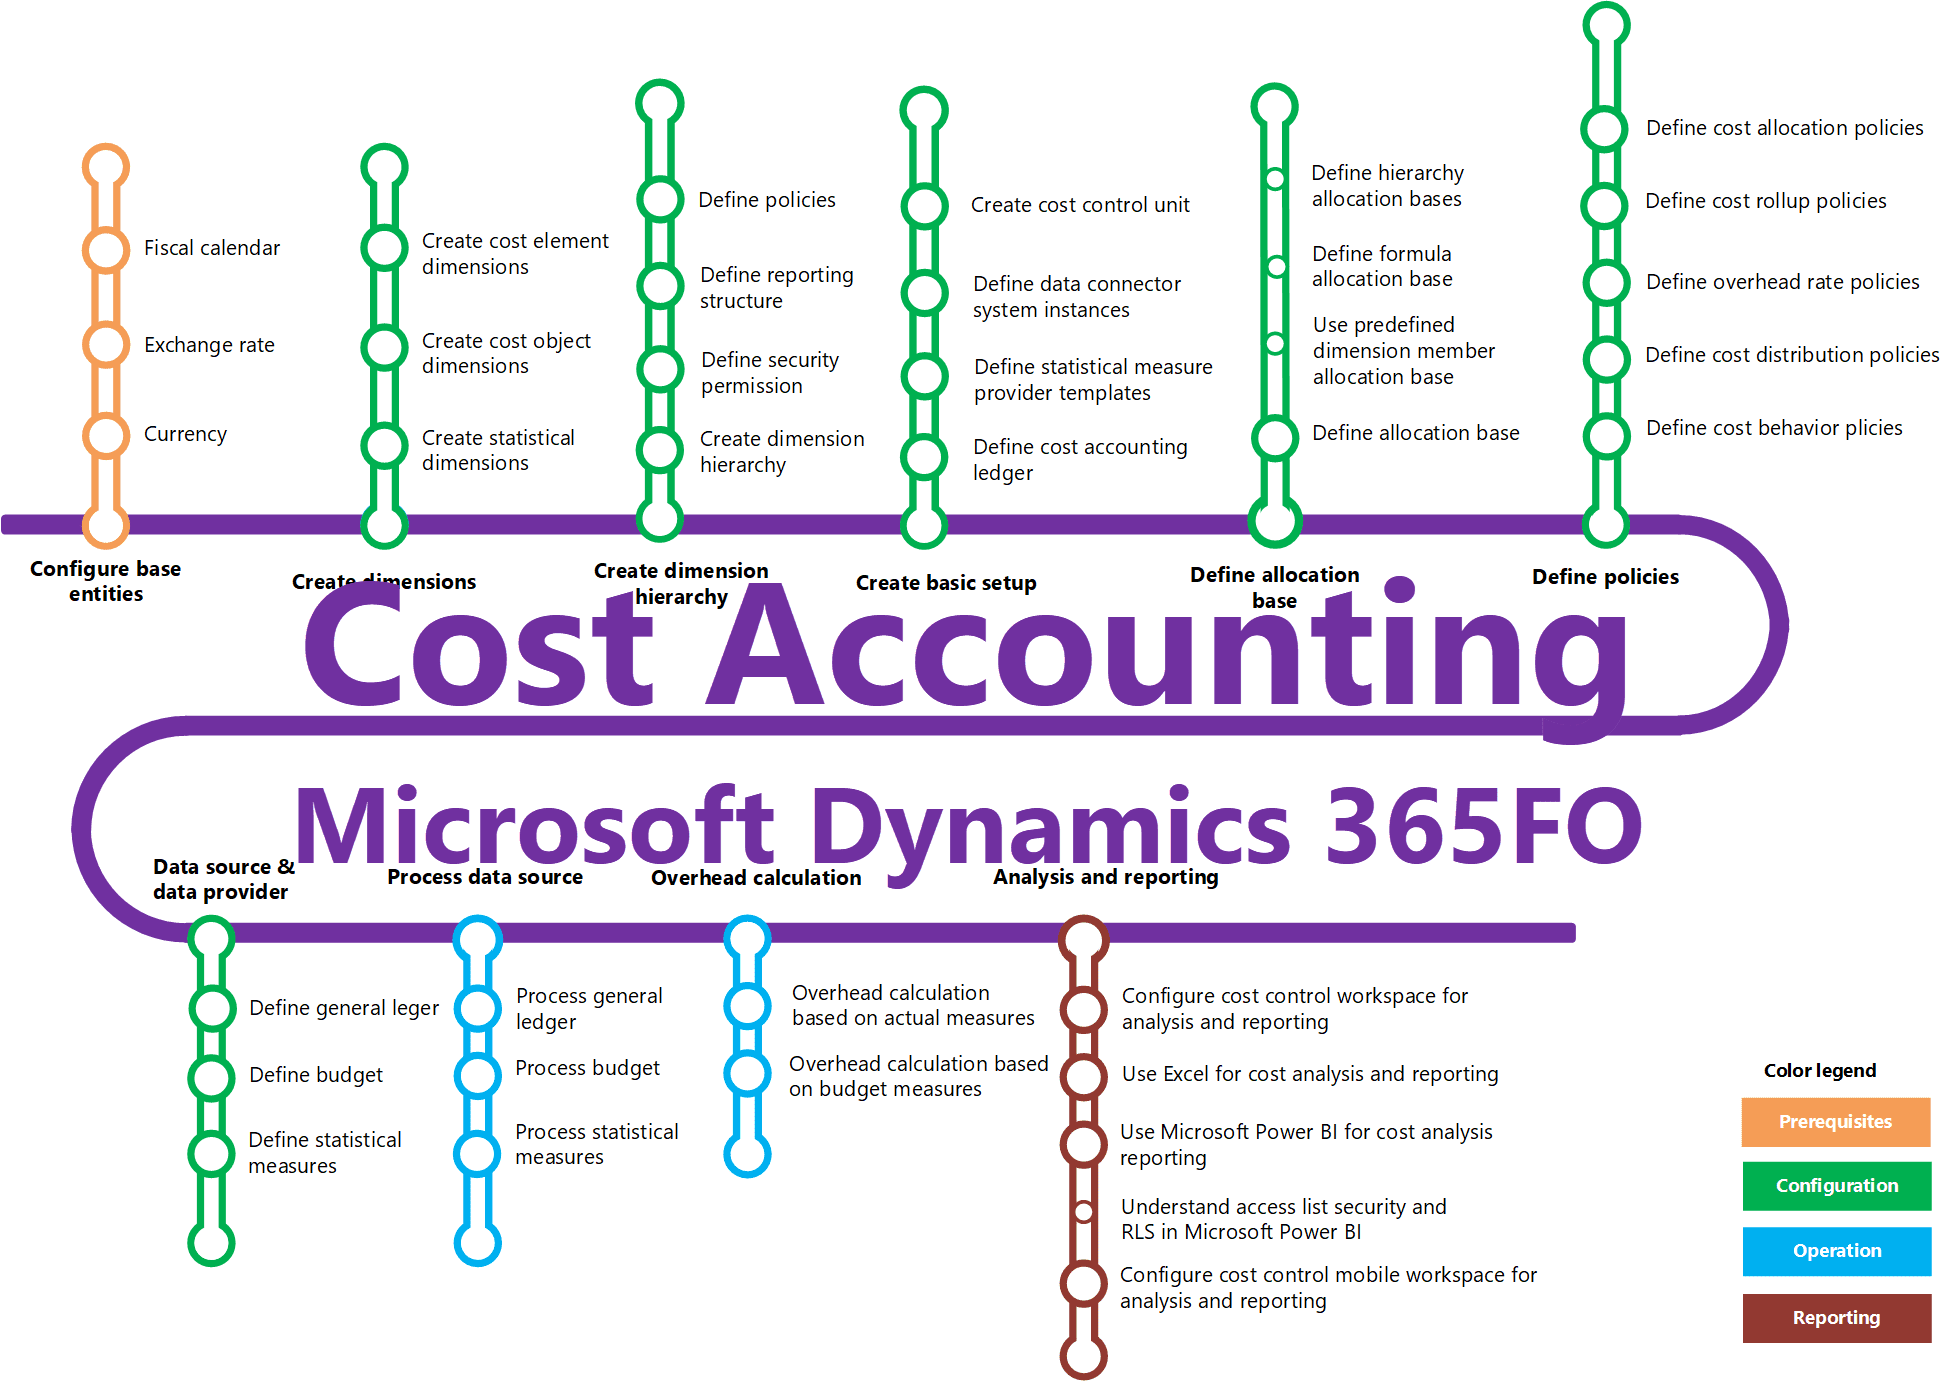 Cost Accounting for Finance and Operations course | AXcademy